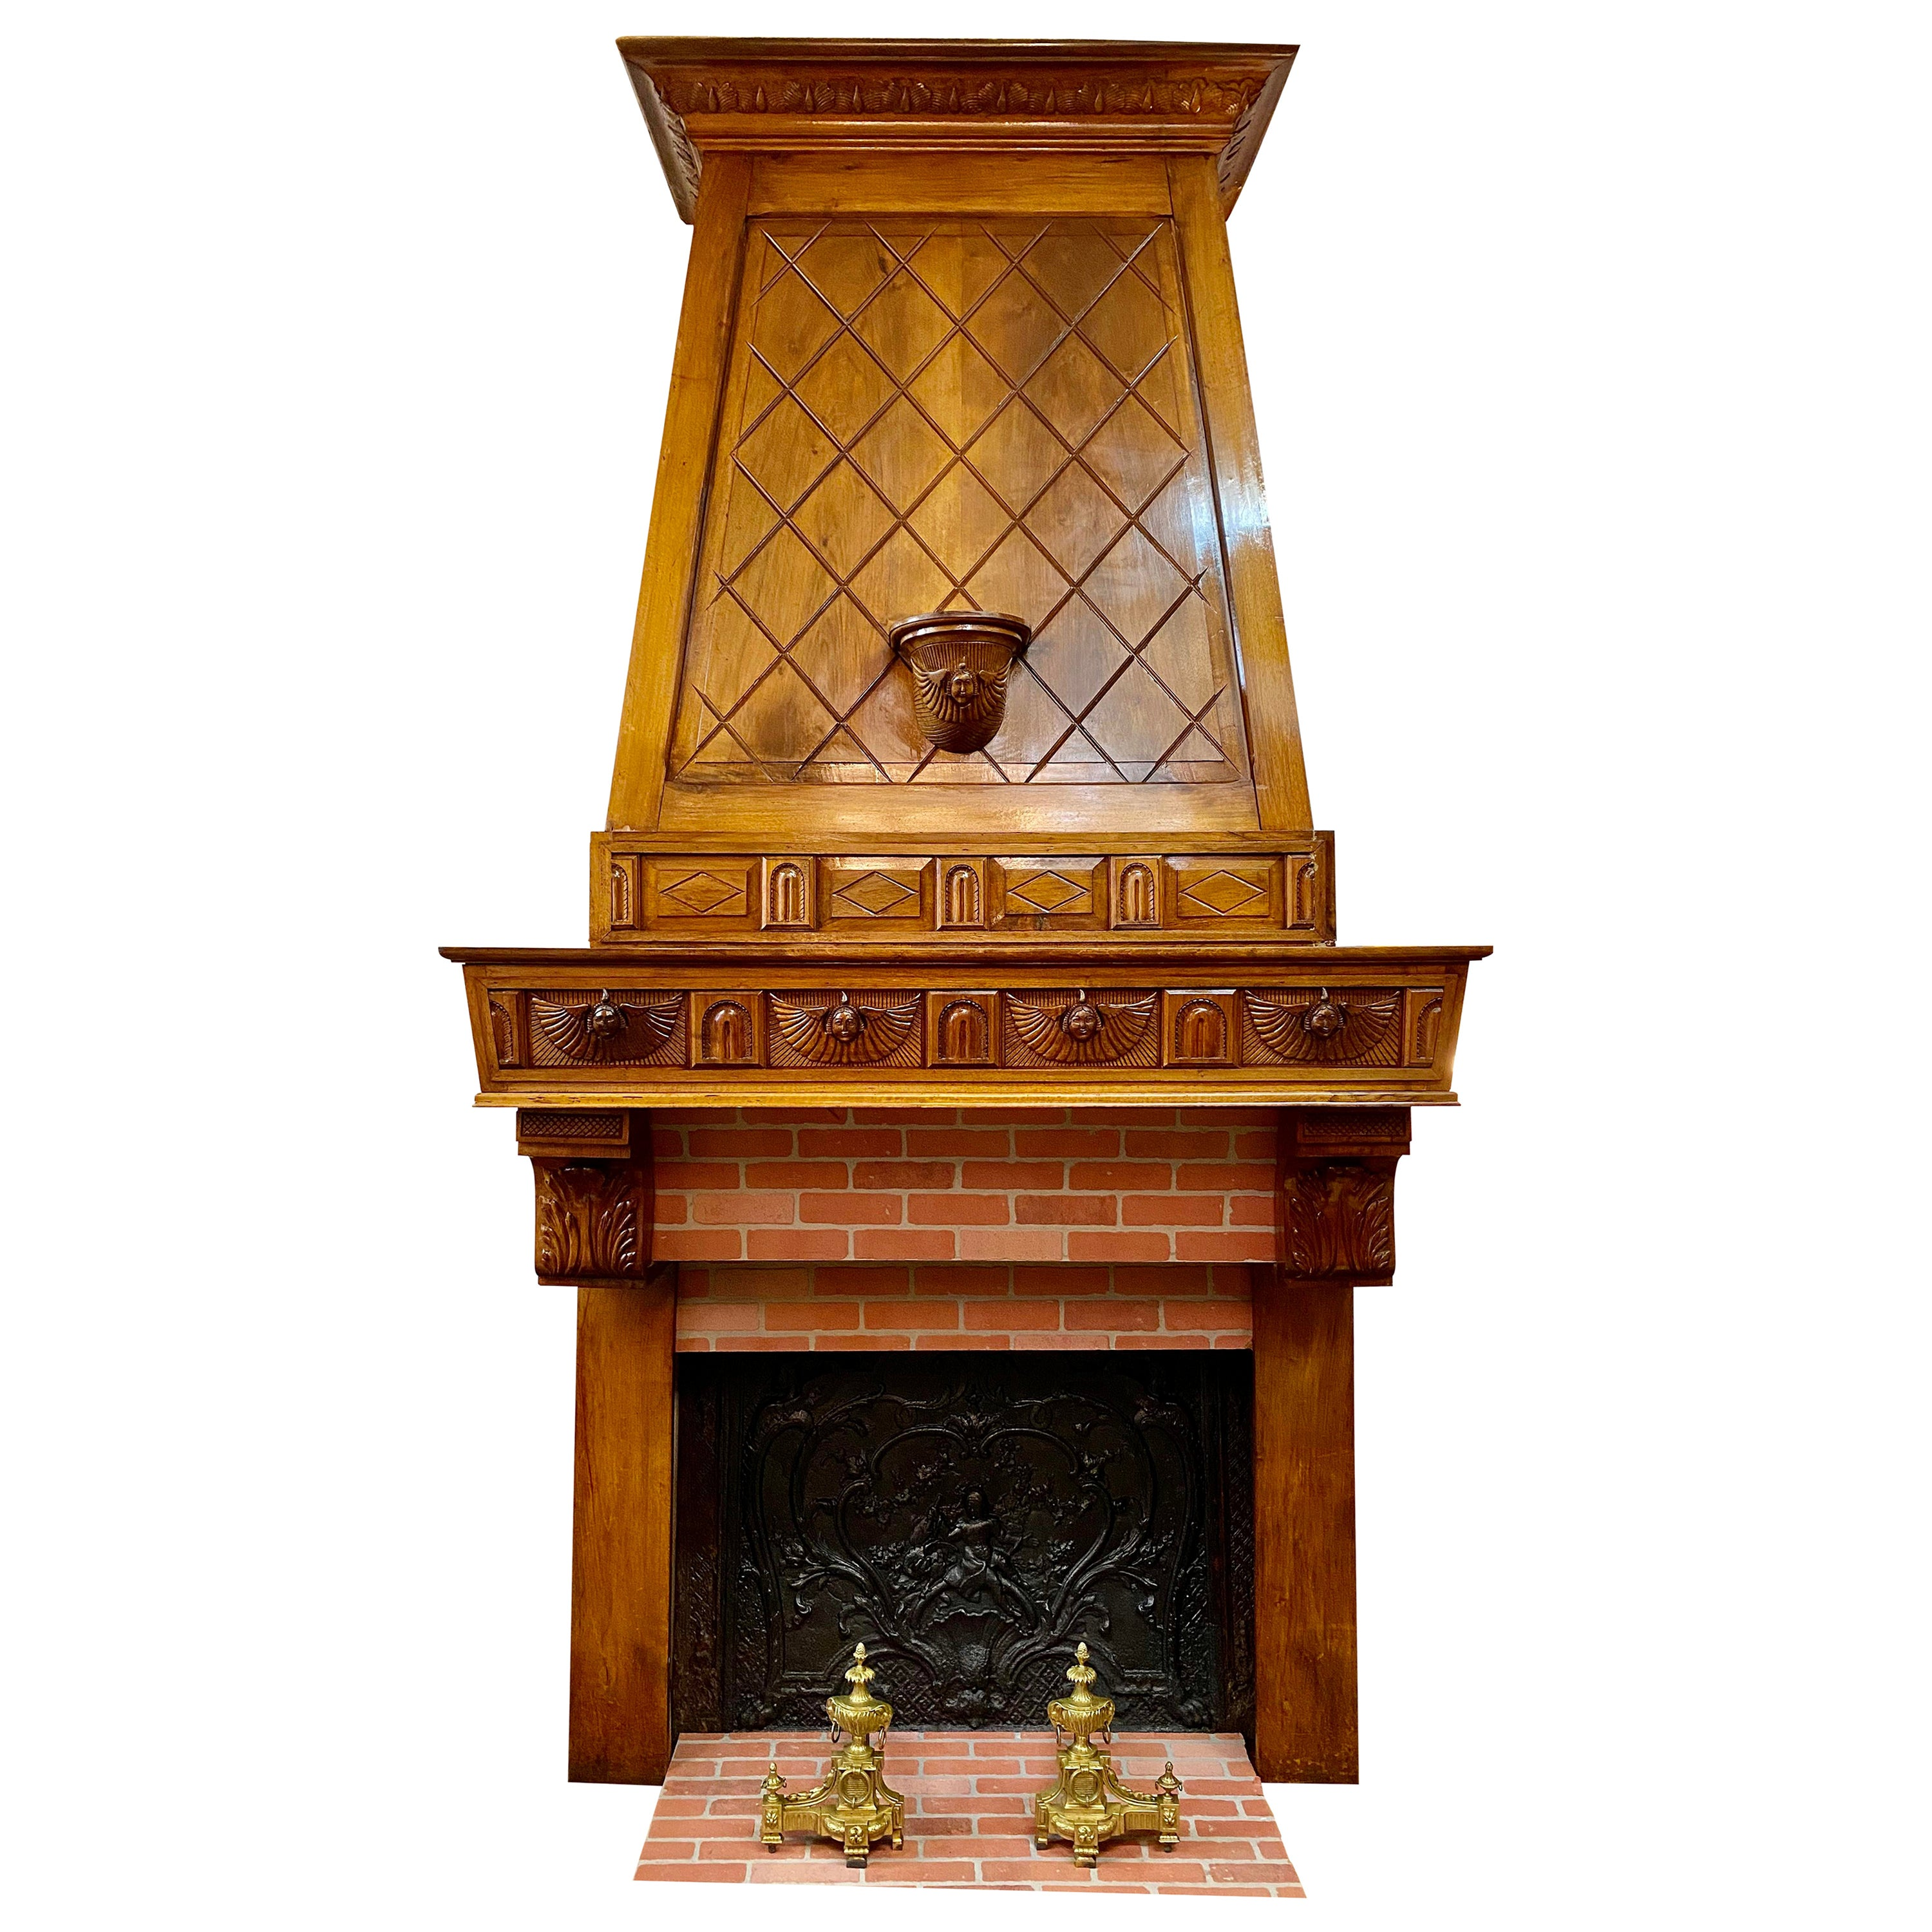 Early 1900s Antique French Art Nouveau Carved Walnut Fireplace Mantel